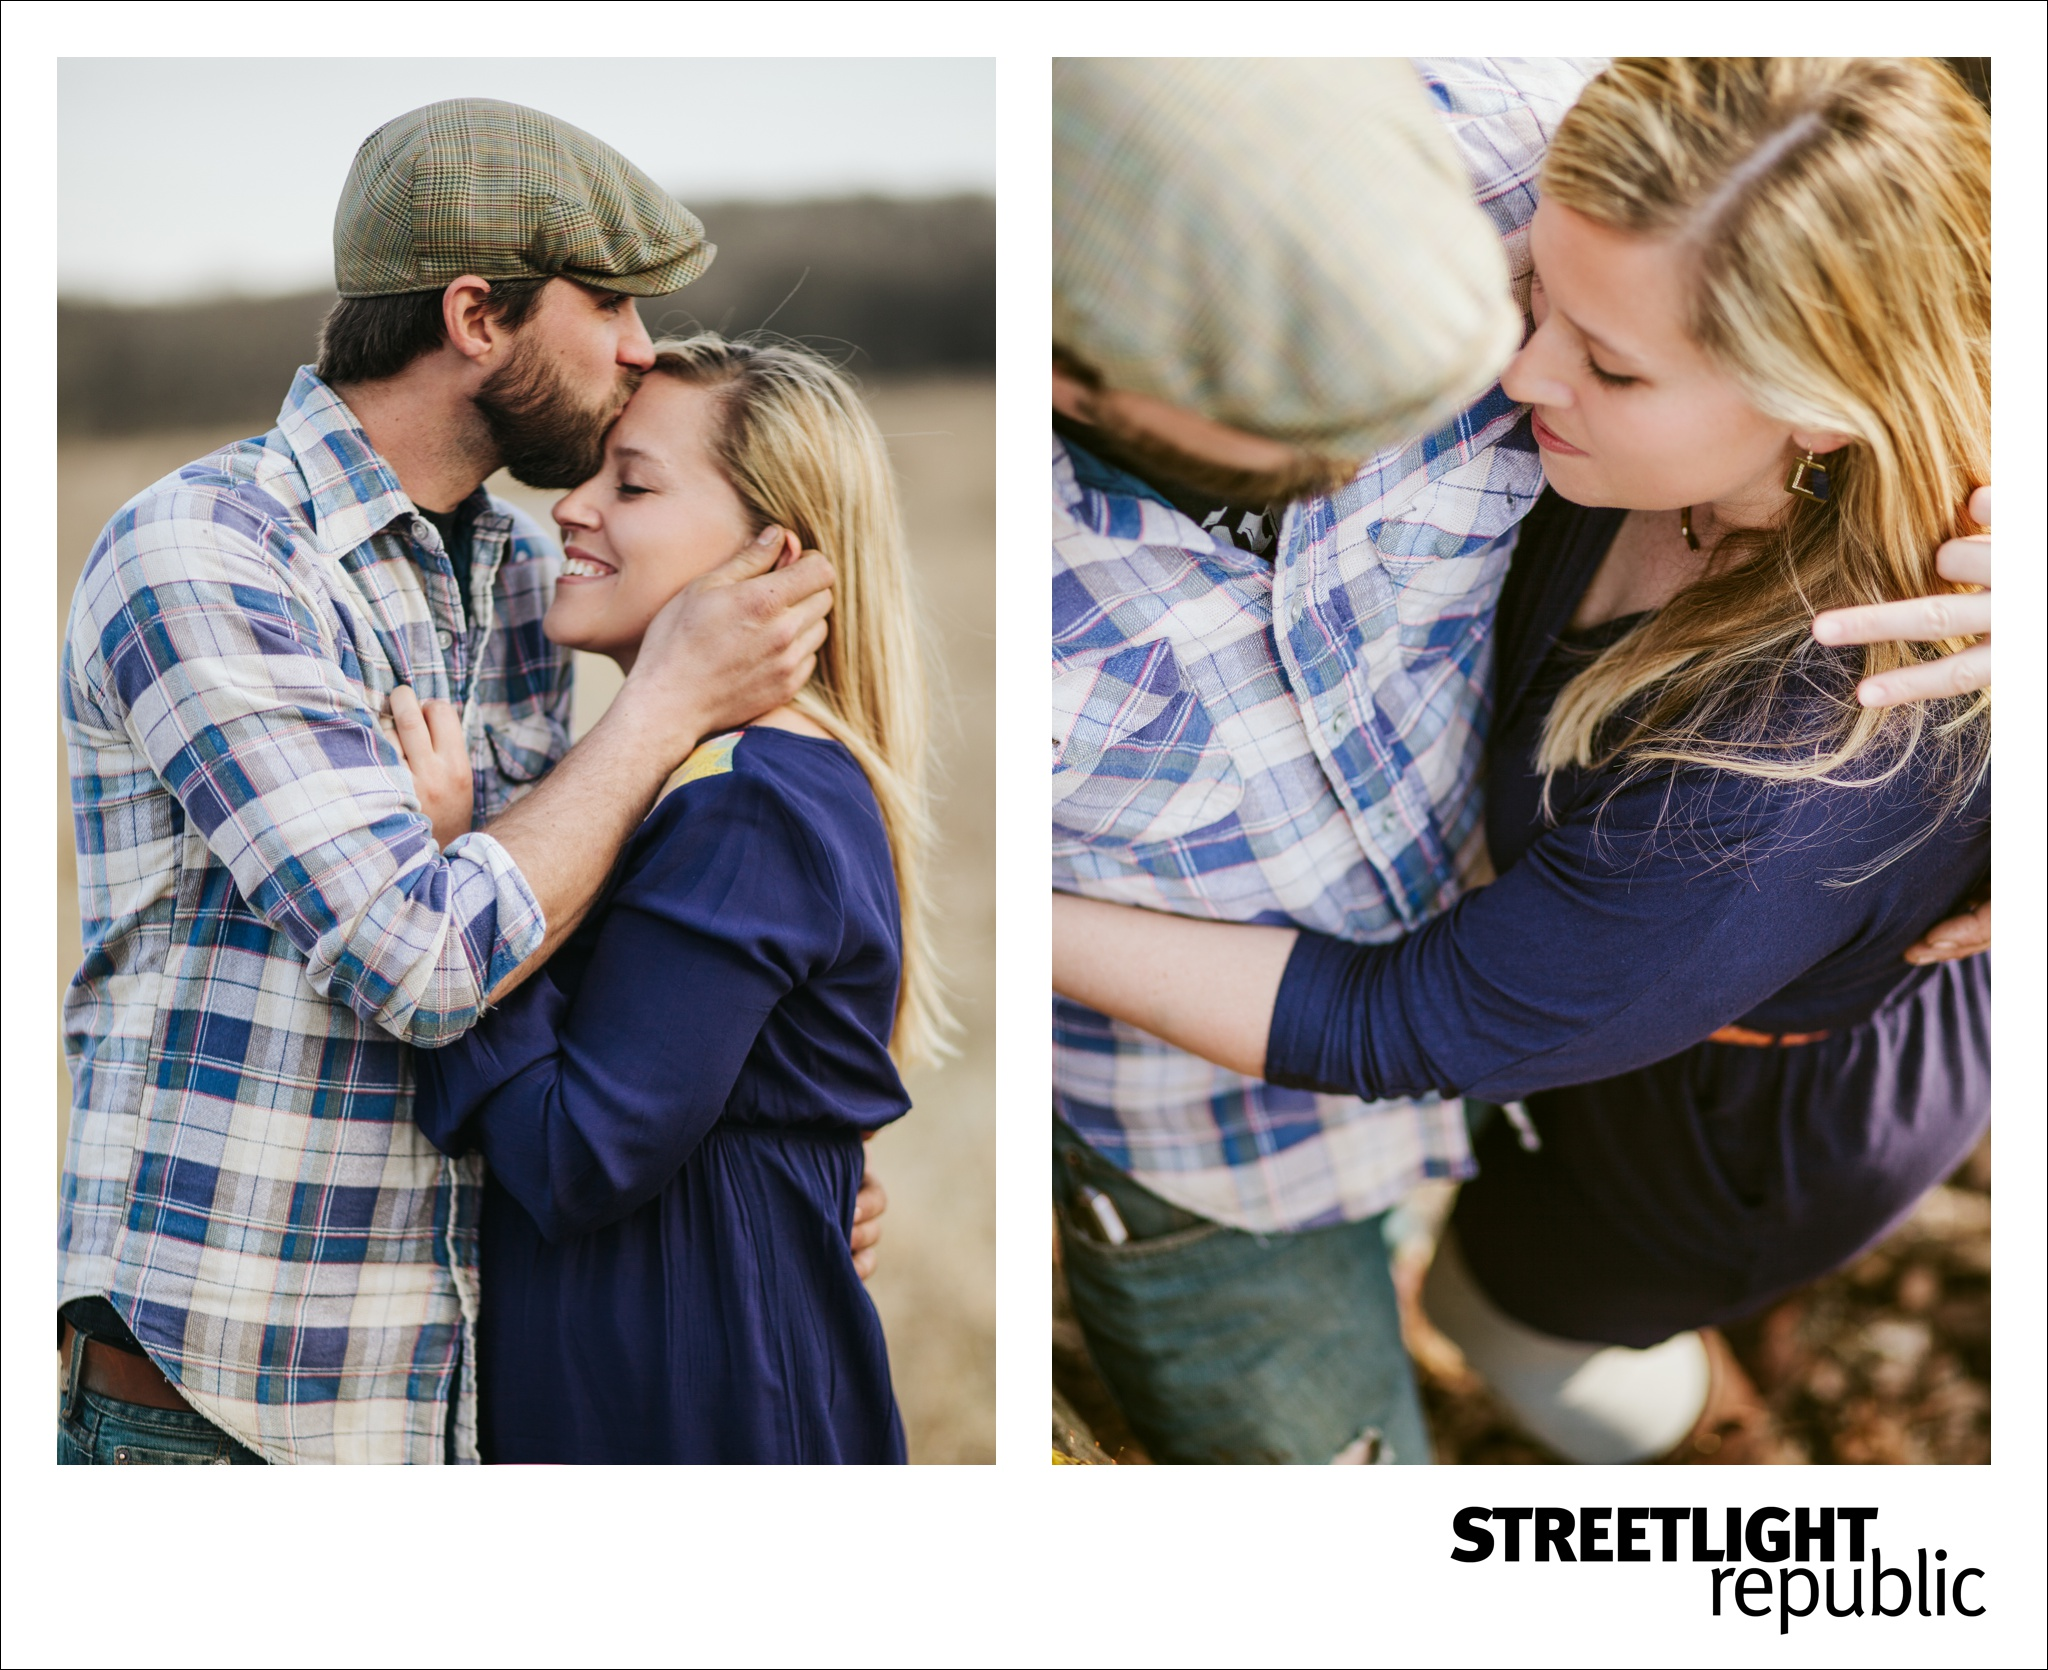 Nashville Wedding Photographer, Thompsons station wedding photographer, nashville wedding photographer, streetlight republic, nashville wedding